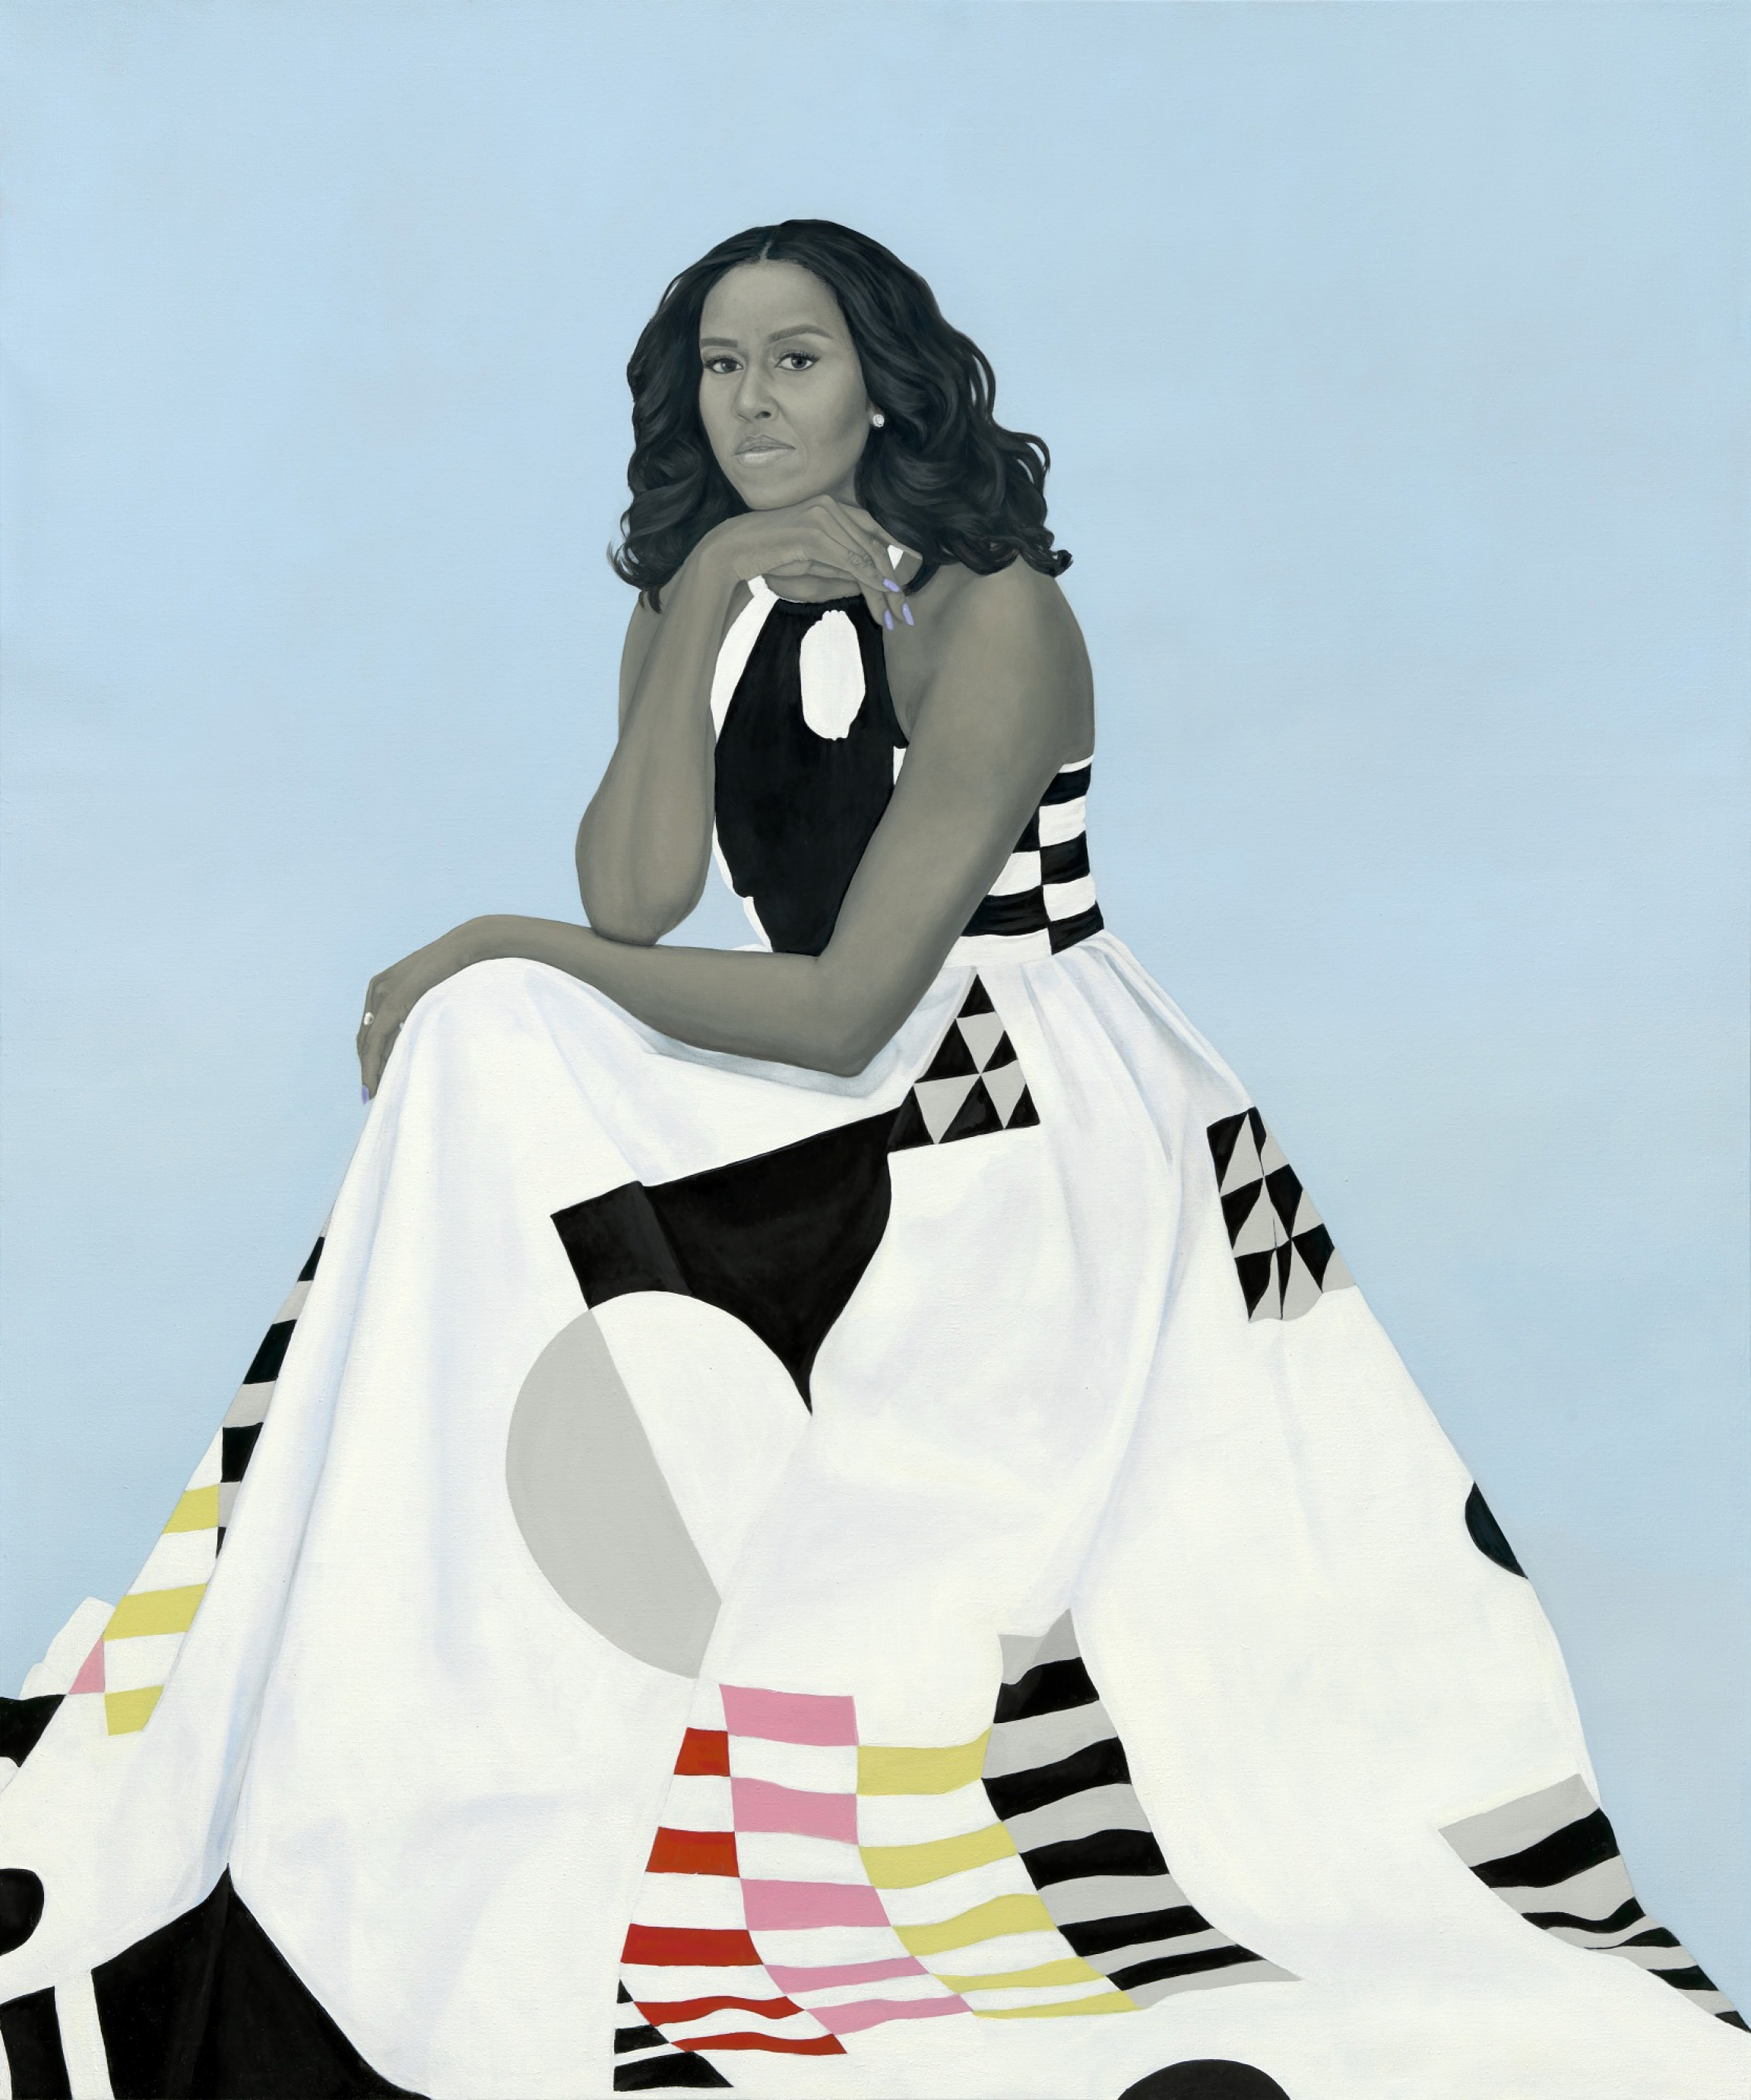 First Lady Michelle Obama, painted by Amy Sherald.